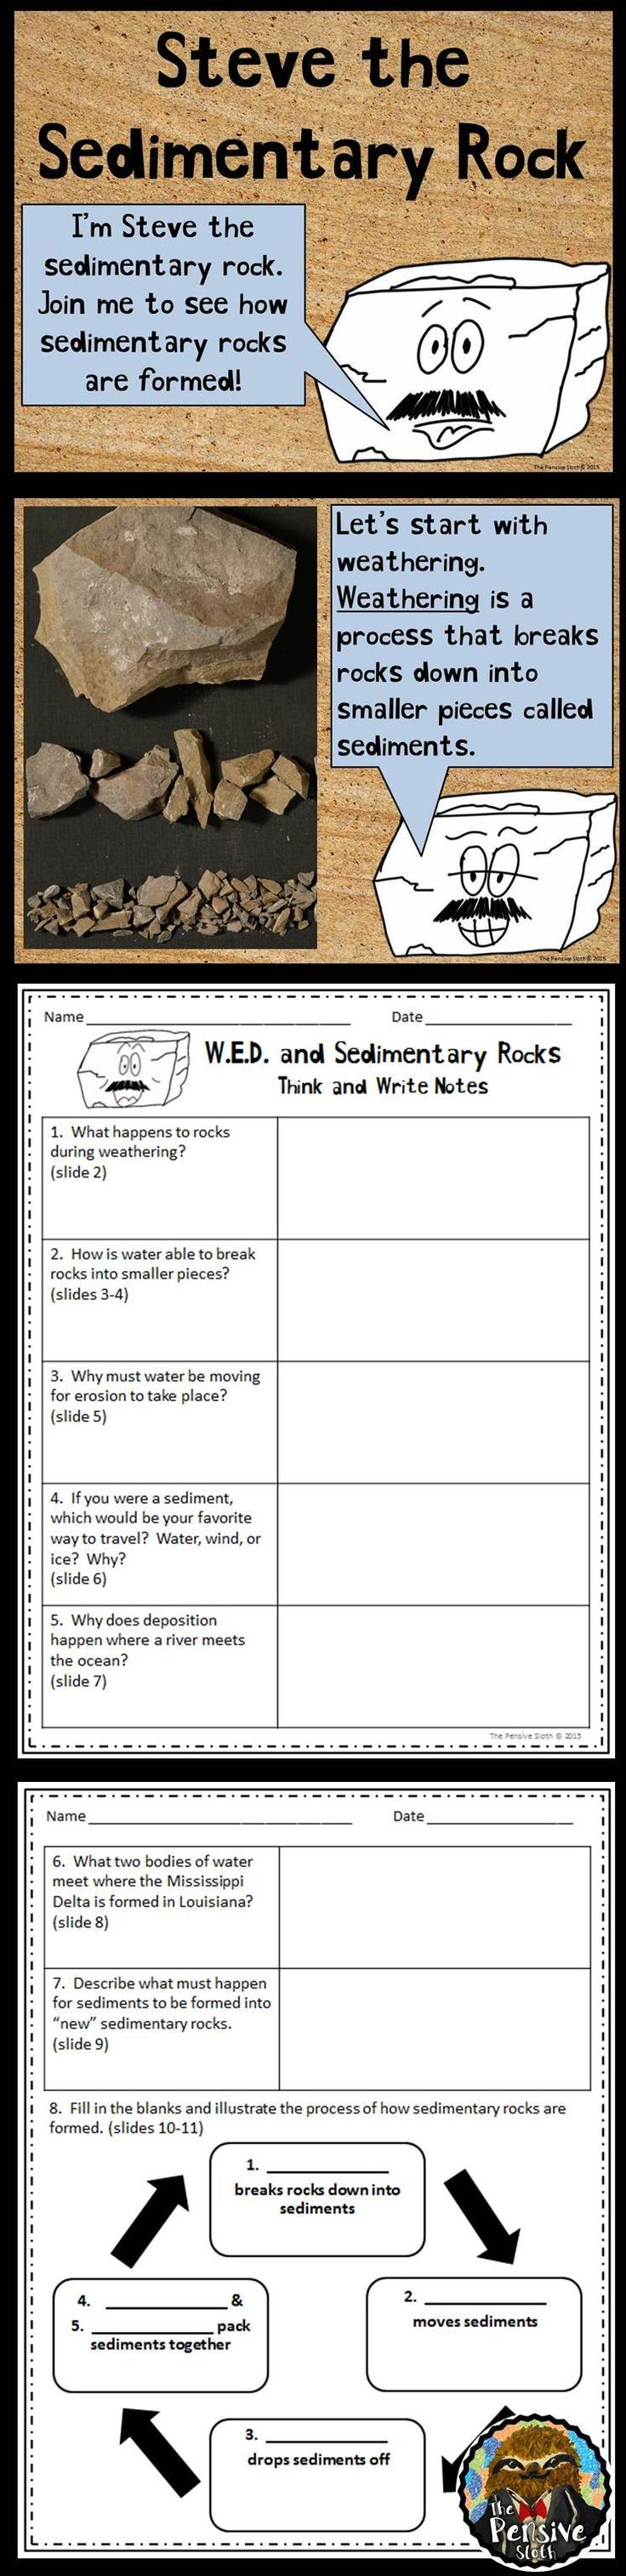 Weathering, erosion, deposition, and sedimentary rocks powerpoint and guided notes.  The notes consist of turn and talk and critical thinking questions that encourage students to think and discuss before writing.